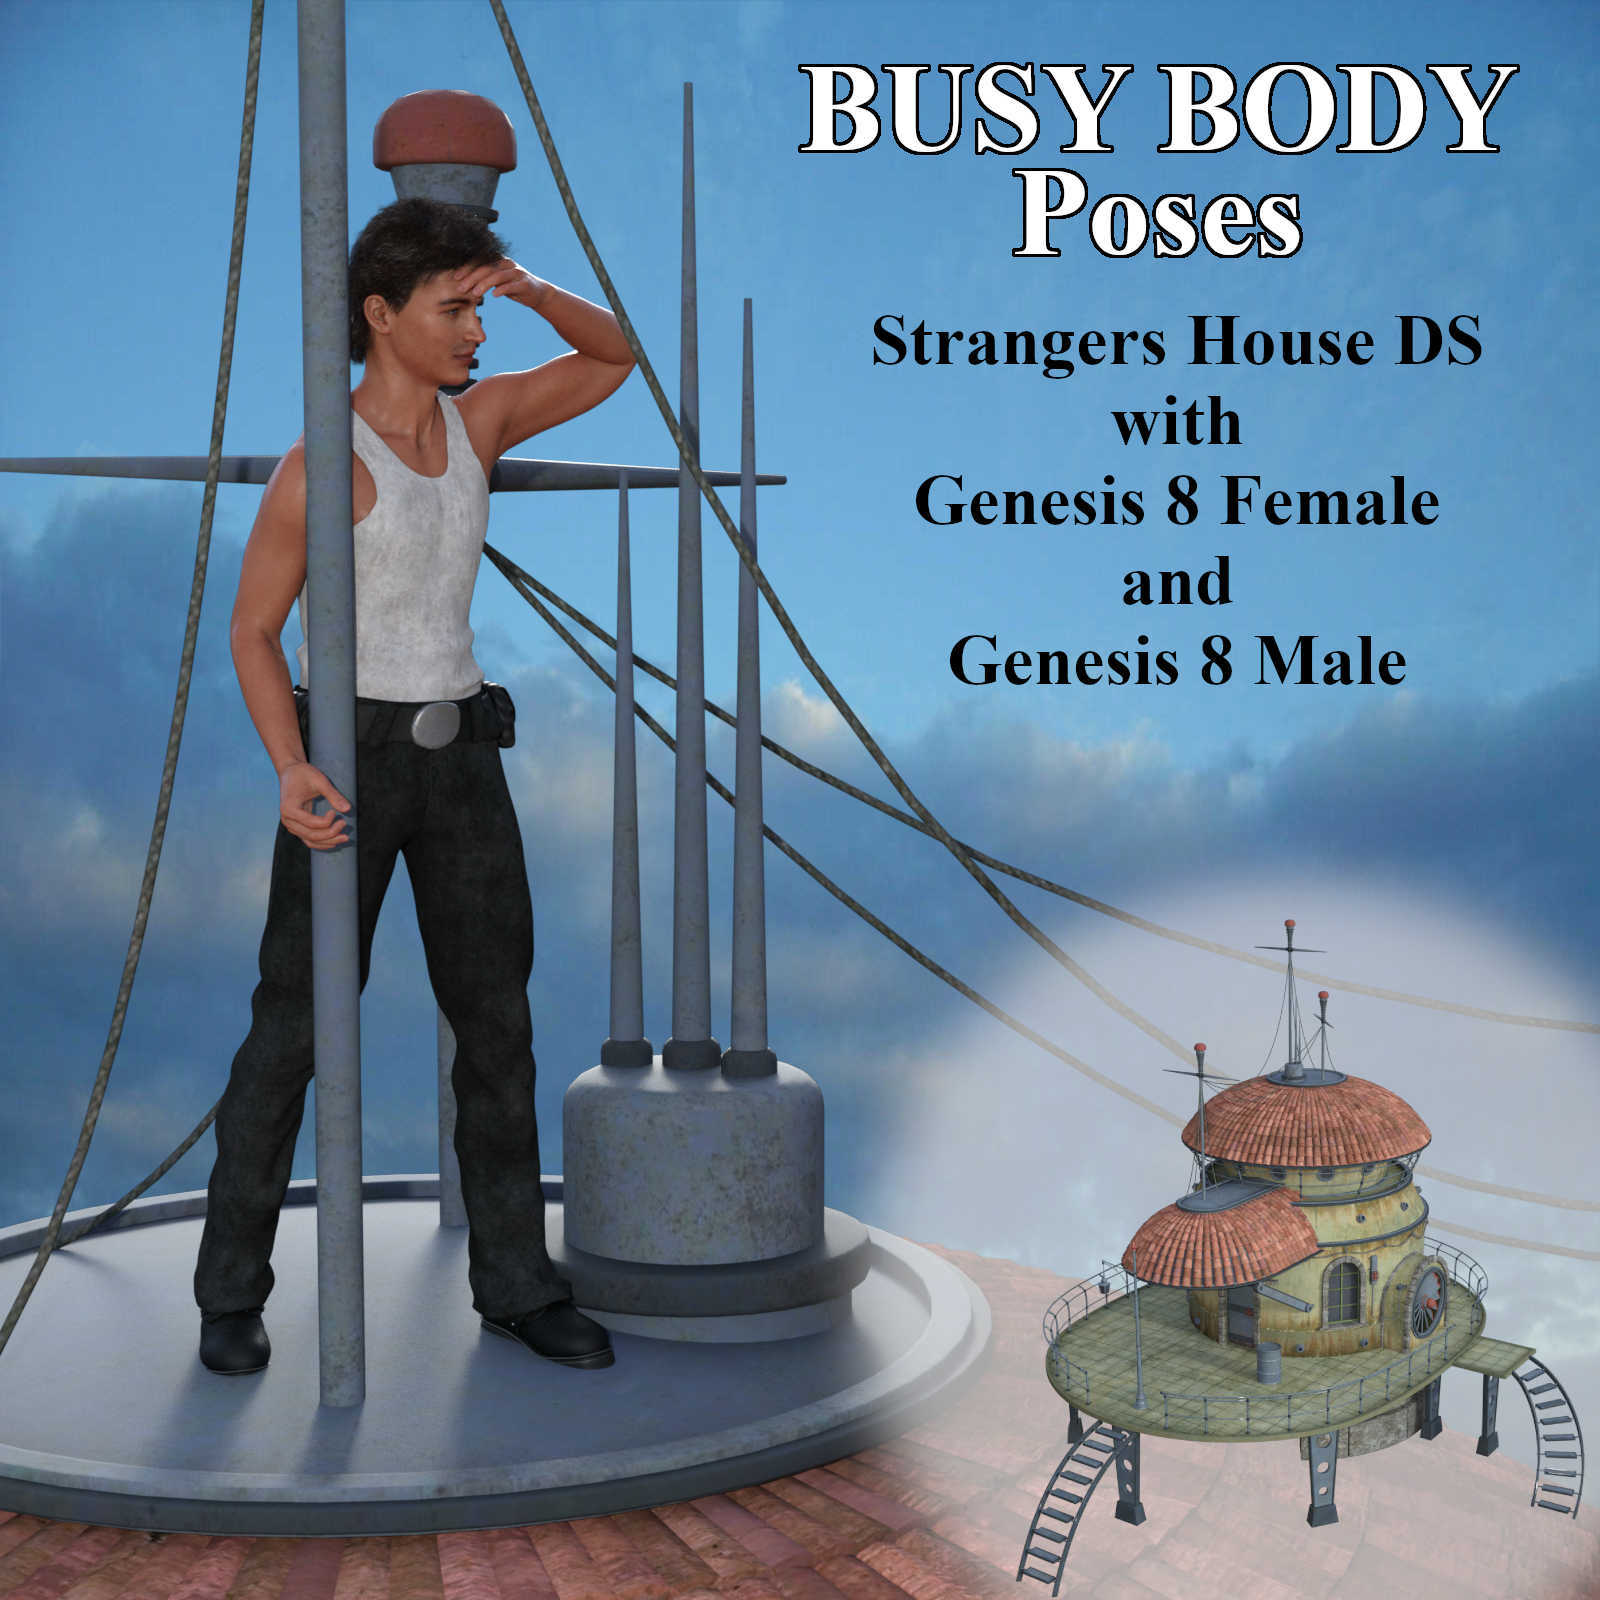 BUSY BODY Pose Set for Strangers House DS with Genesis 8 Female / Male (G8F/G8M)